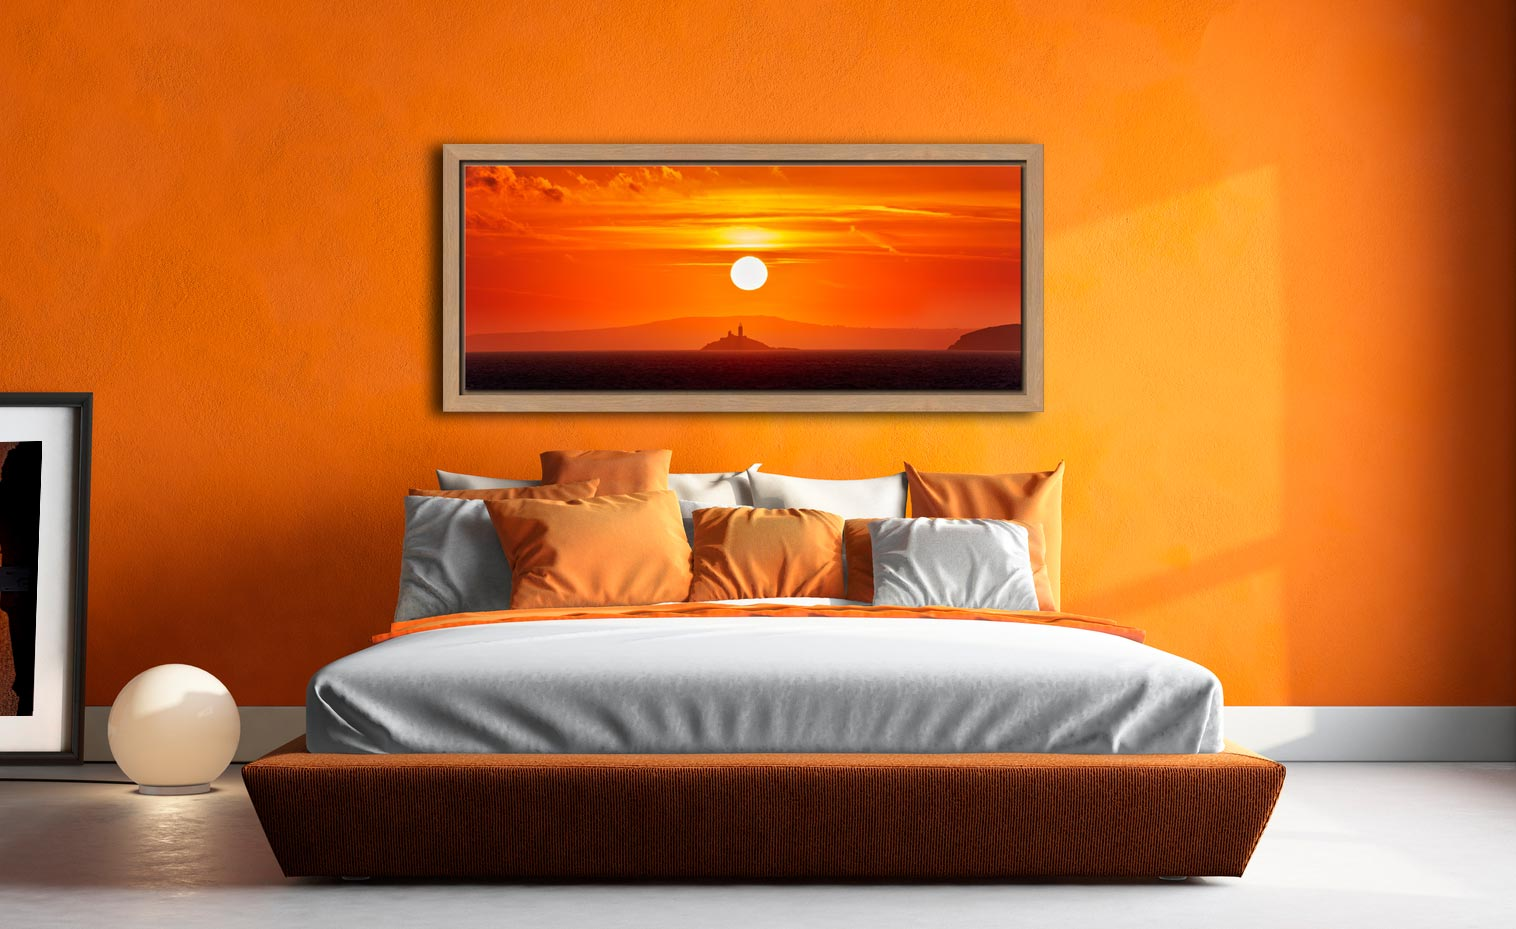 The golden sun rising over Godrevy Lighthouse in St Ives Bay - Oak floater frame with acrylic glazing on Wall